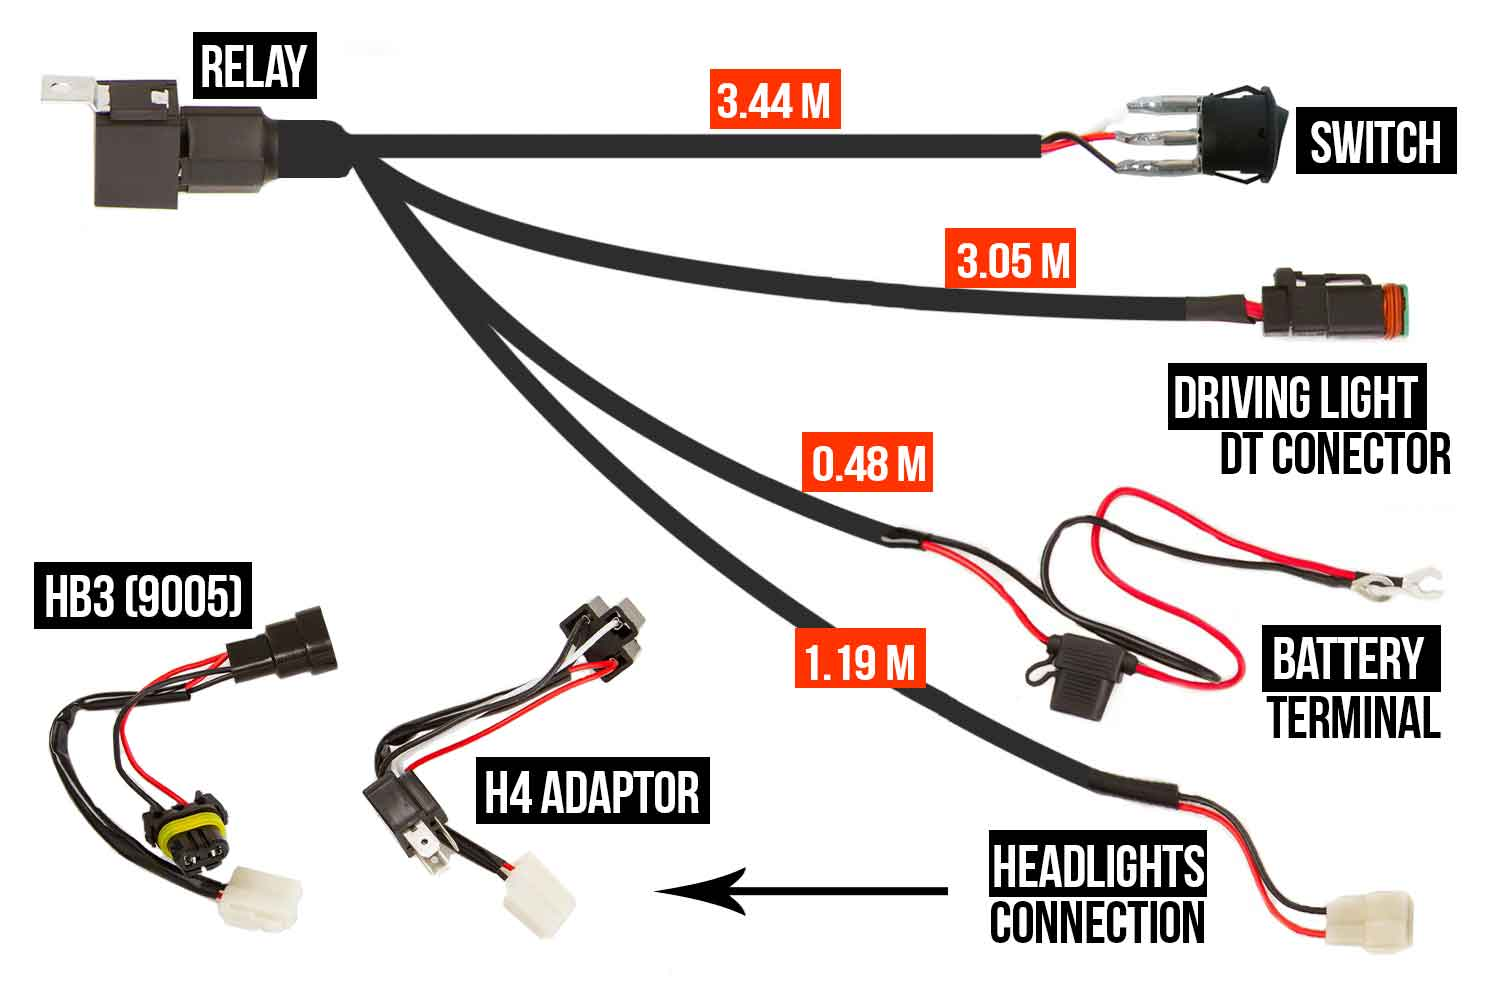 led driving light wiring harness h4 hb3 9005 [ 1500 x 1000 Pixel ]